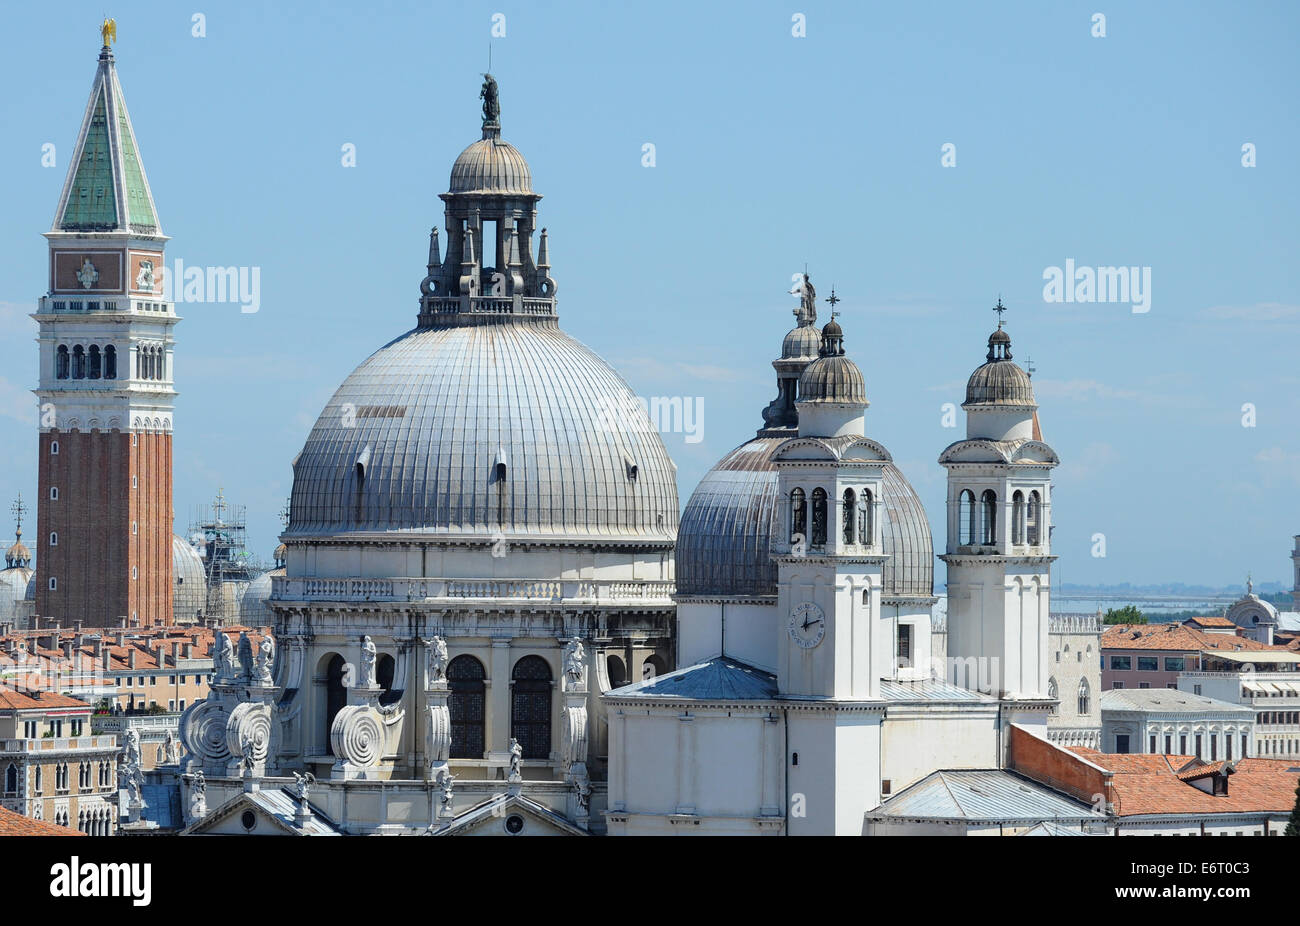 The skyline of Venice towers, Domes and red tiled roofs. - Stock Image